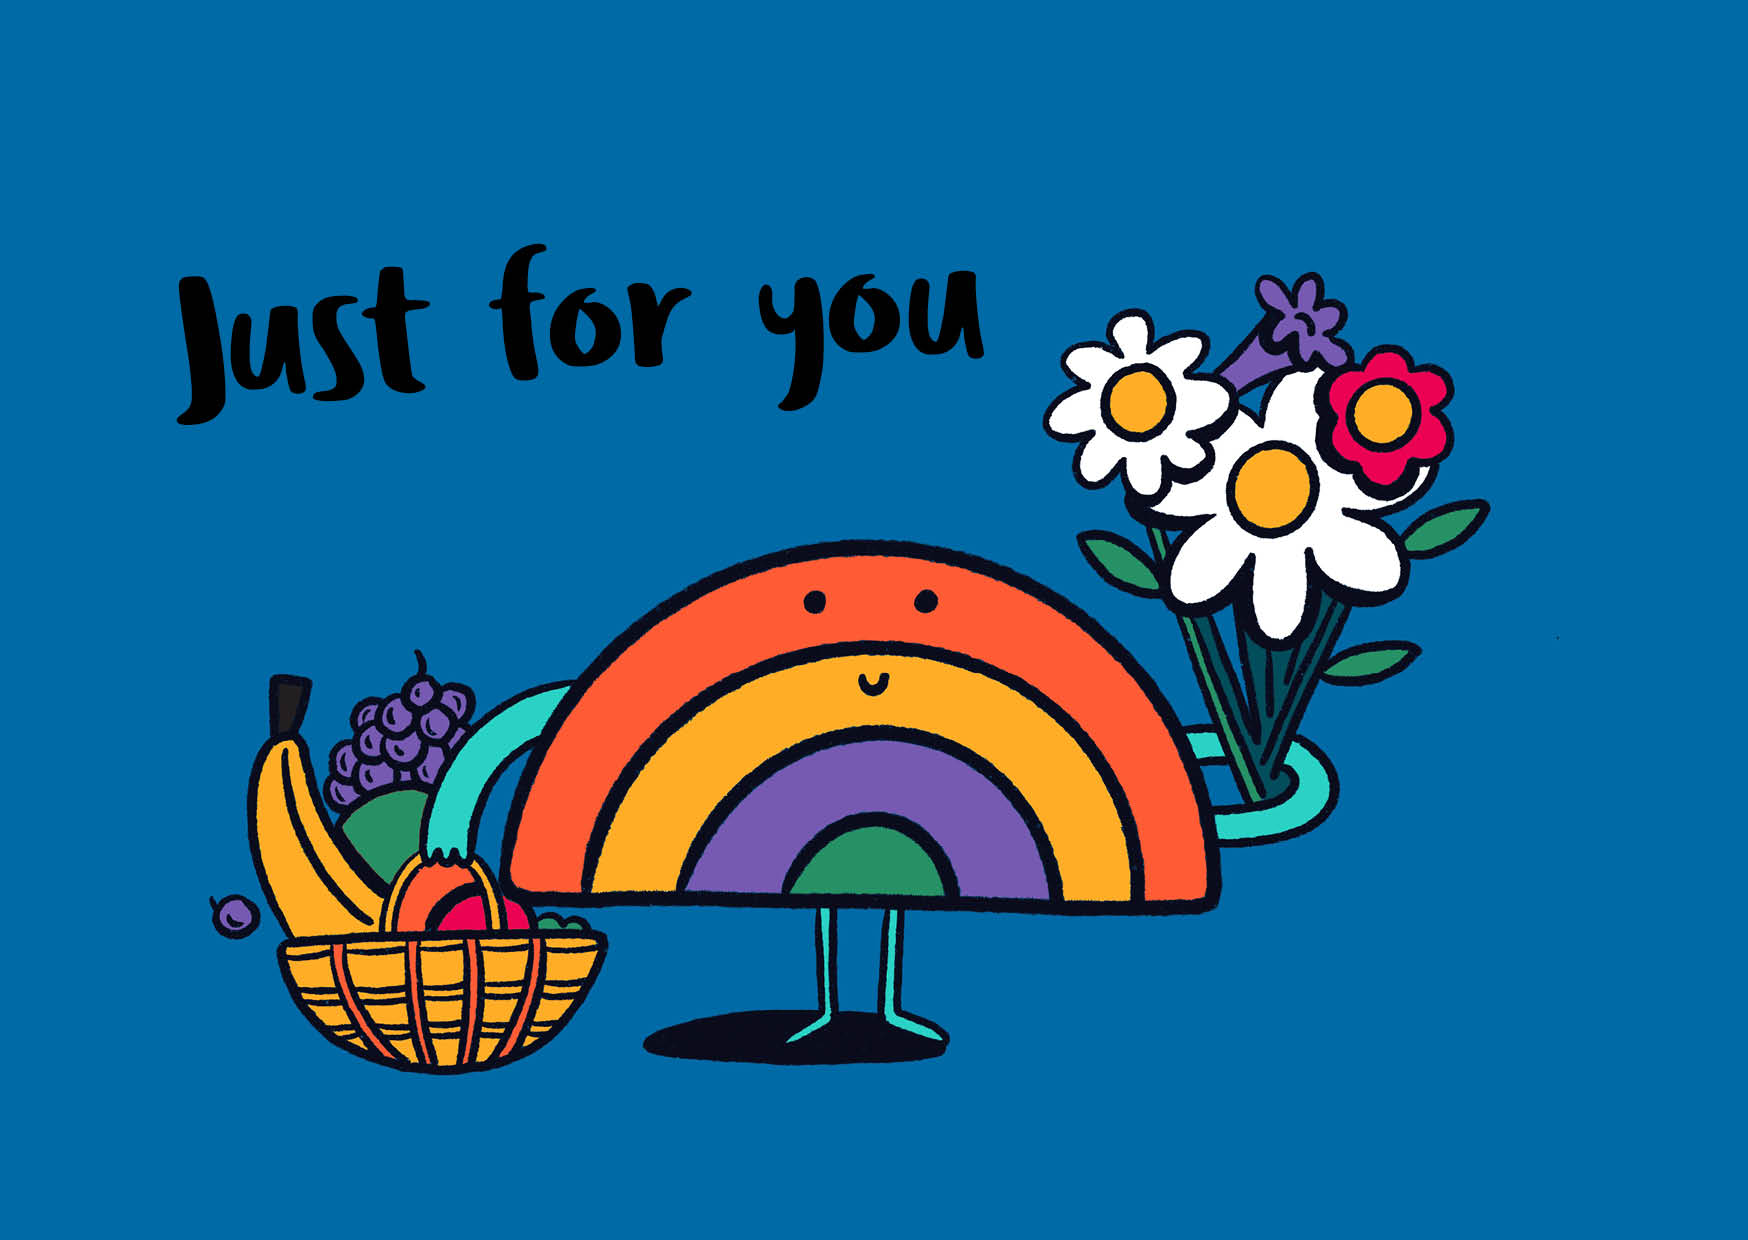 Just for you (Full Colour)